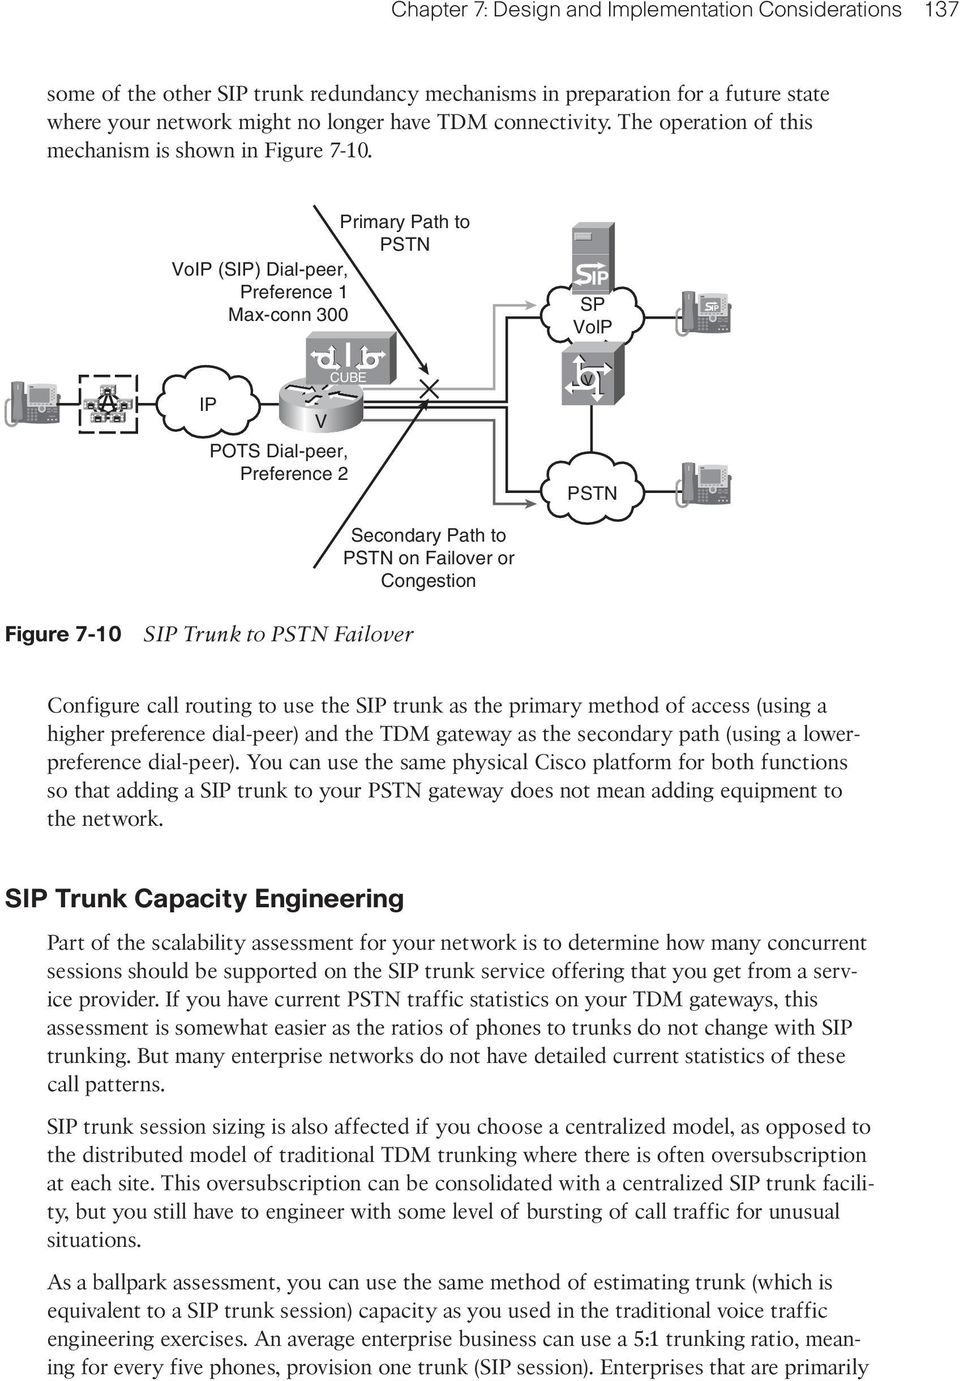 Primary Path to PSTN VoIP (SIP) Dial-peer, Preference 1 Max-conn 300 IP SP VolP IP IP V POTS Dial-peer, Preference 2 Secondary Path to PSTN on Failover or Congestion V PSTN Figure 7-10 SIP Trunk to